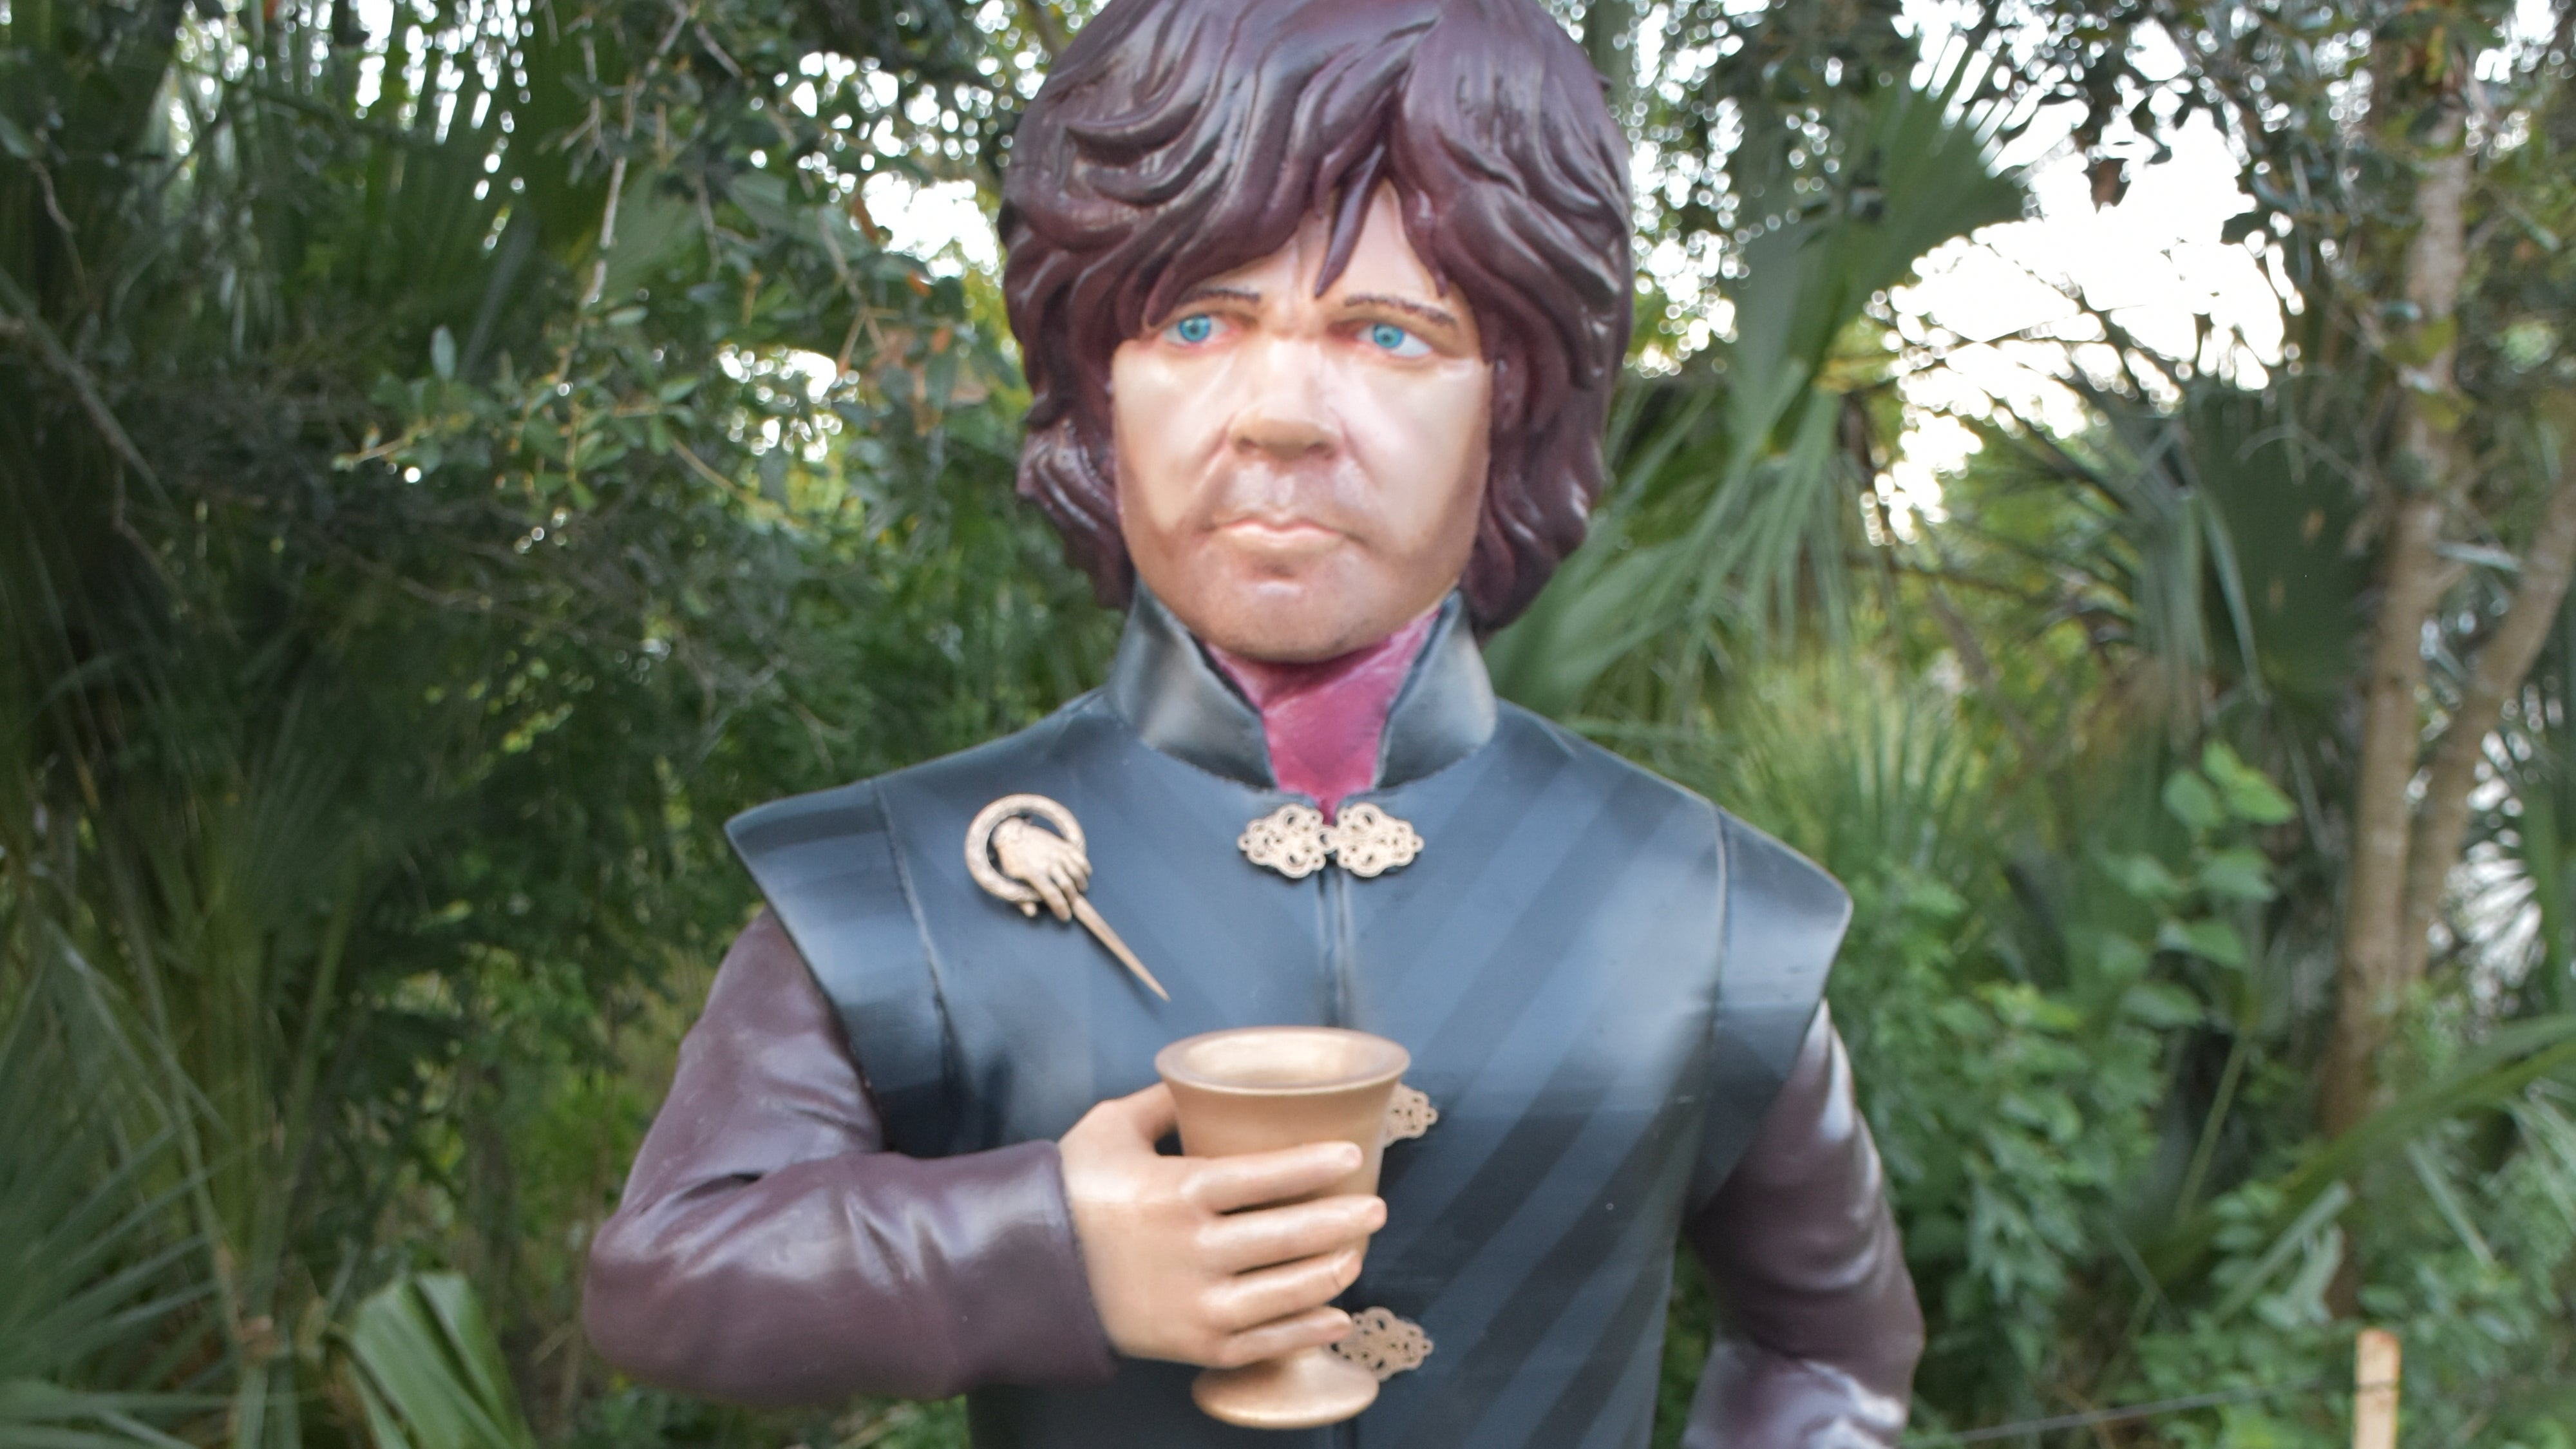 You'll Want To Go Drinking With This Life-Sized, 3D-Printed Tyrion Lannister